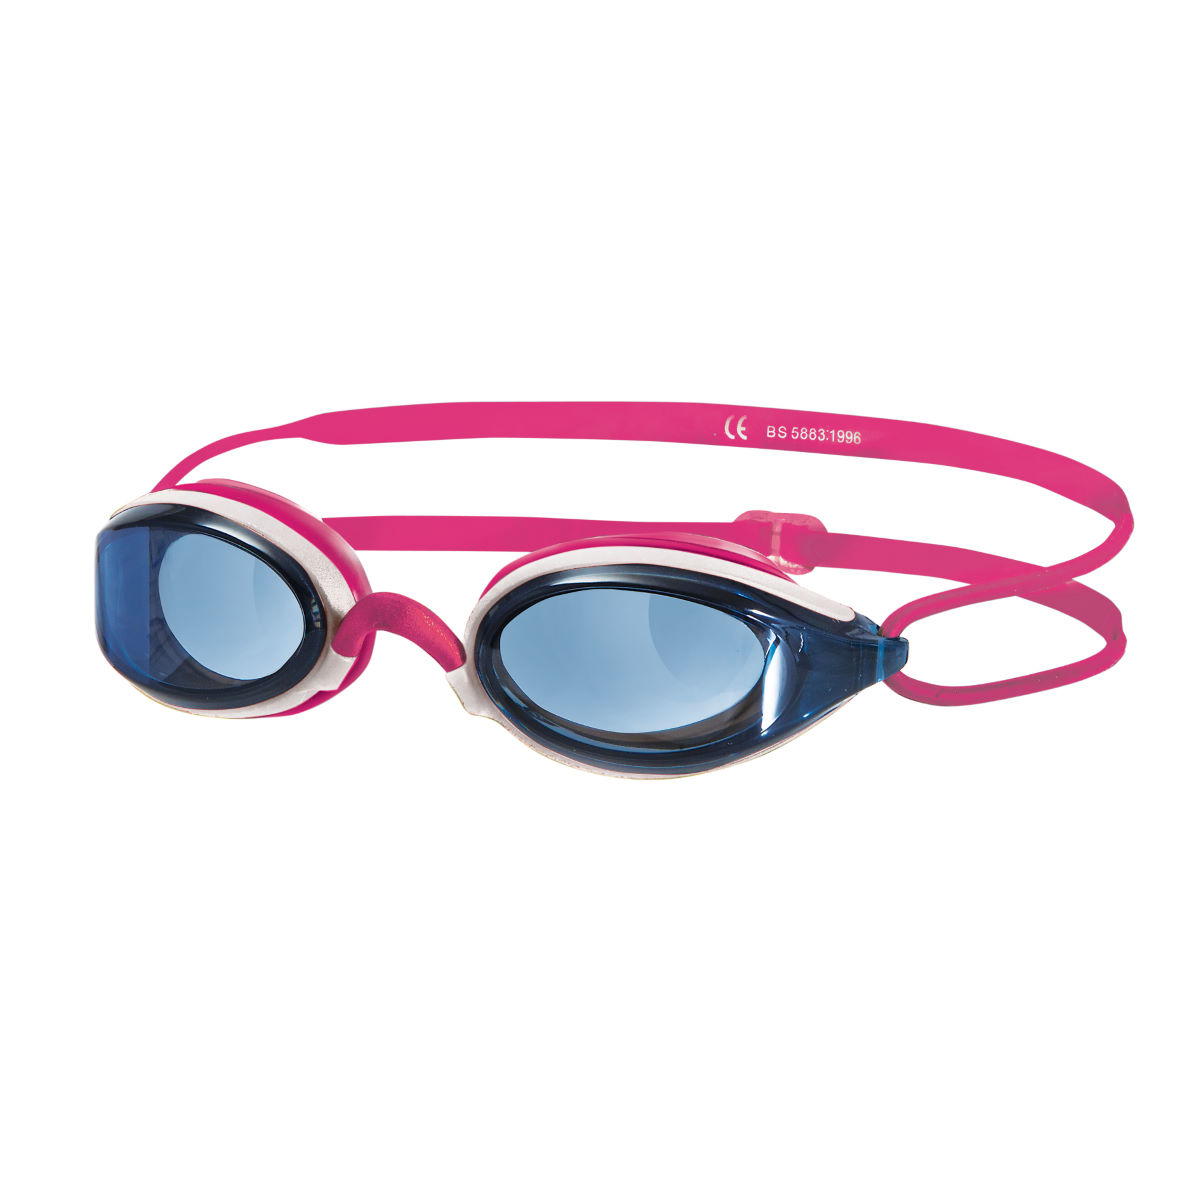 Zoggs Women's Fusion Air Goggles